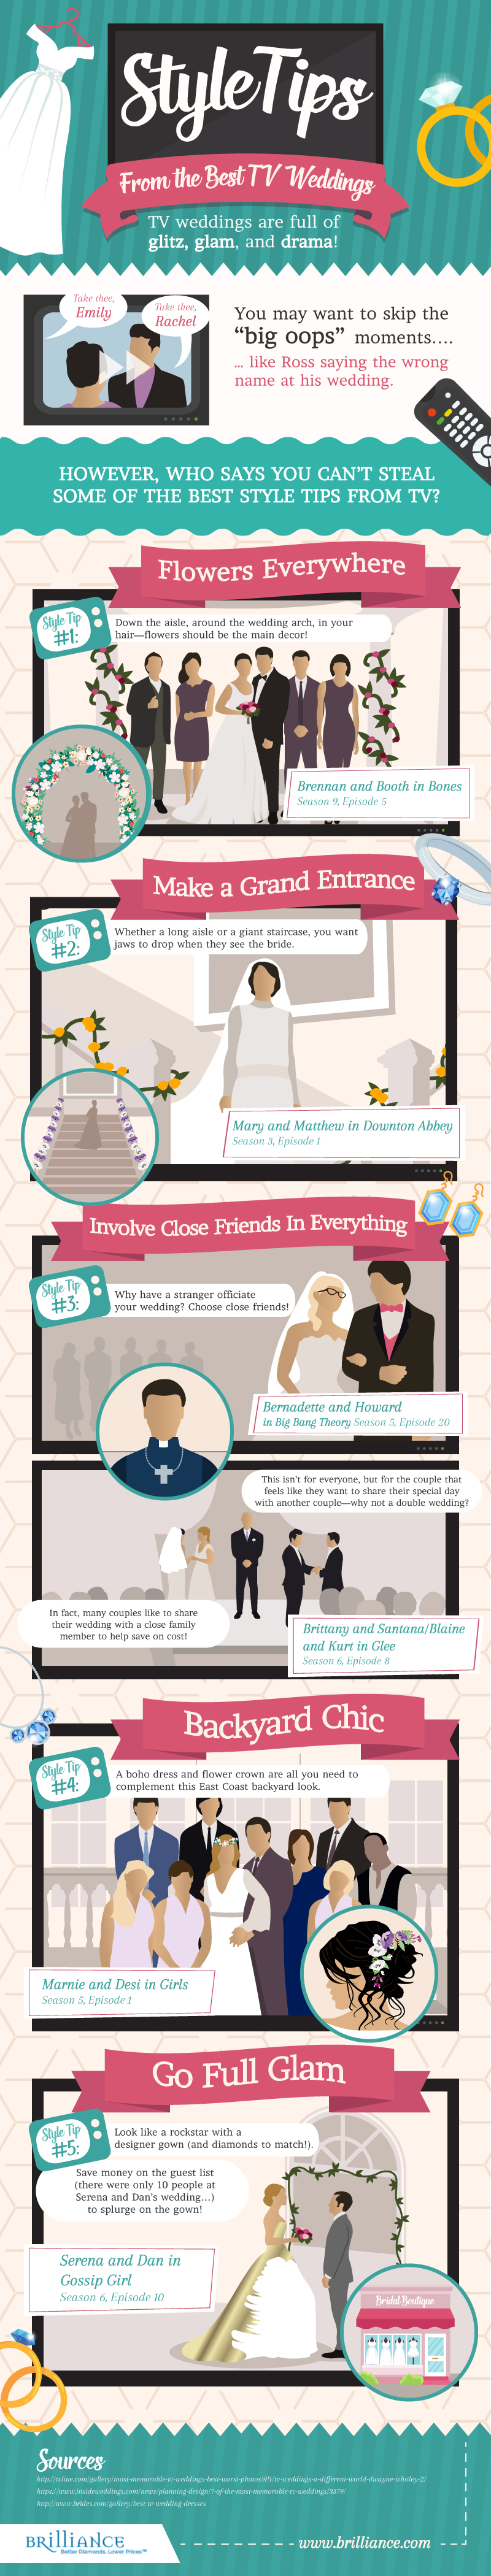 Styles Tips From the Best TV Weddings Infographic